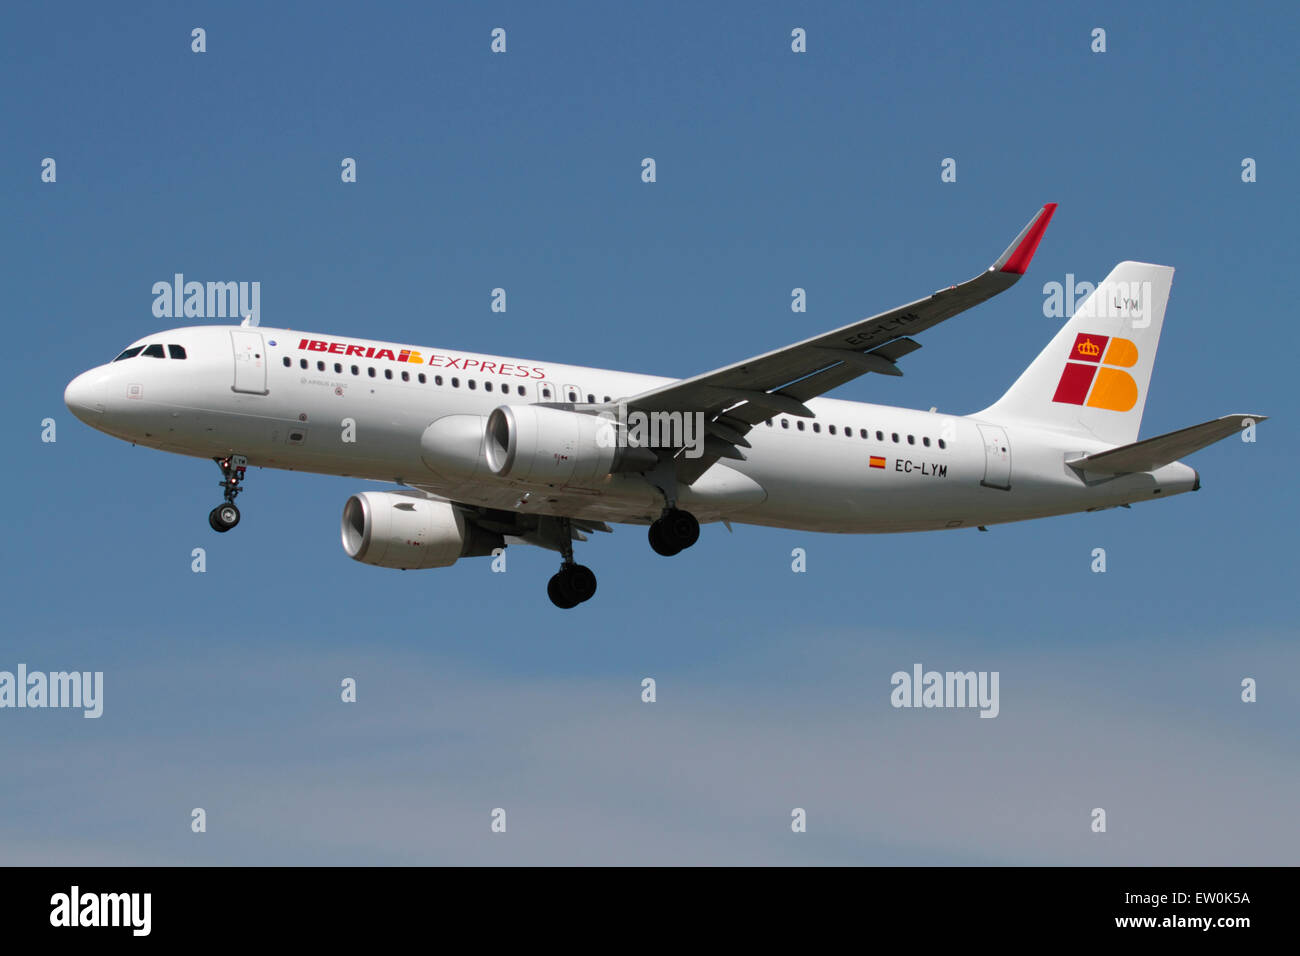 Commercial air travel. Iberia Express Airbus A320 airliner on approach - Stock Image